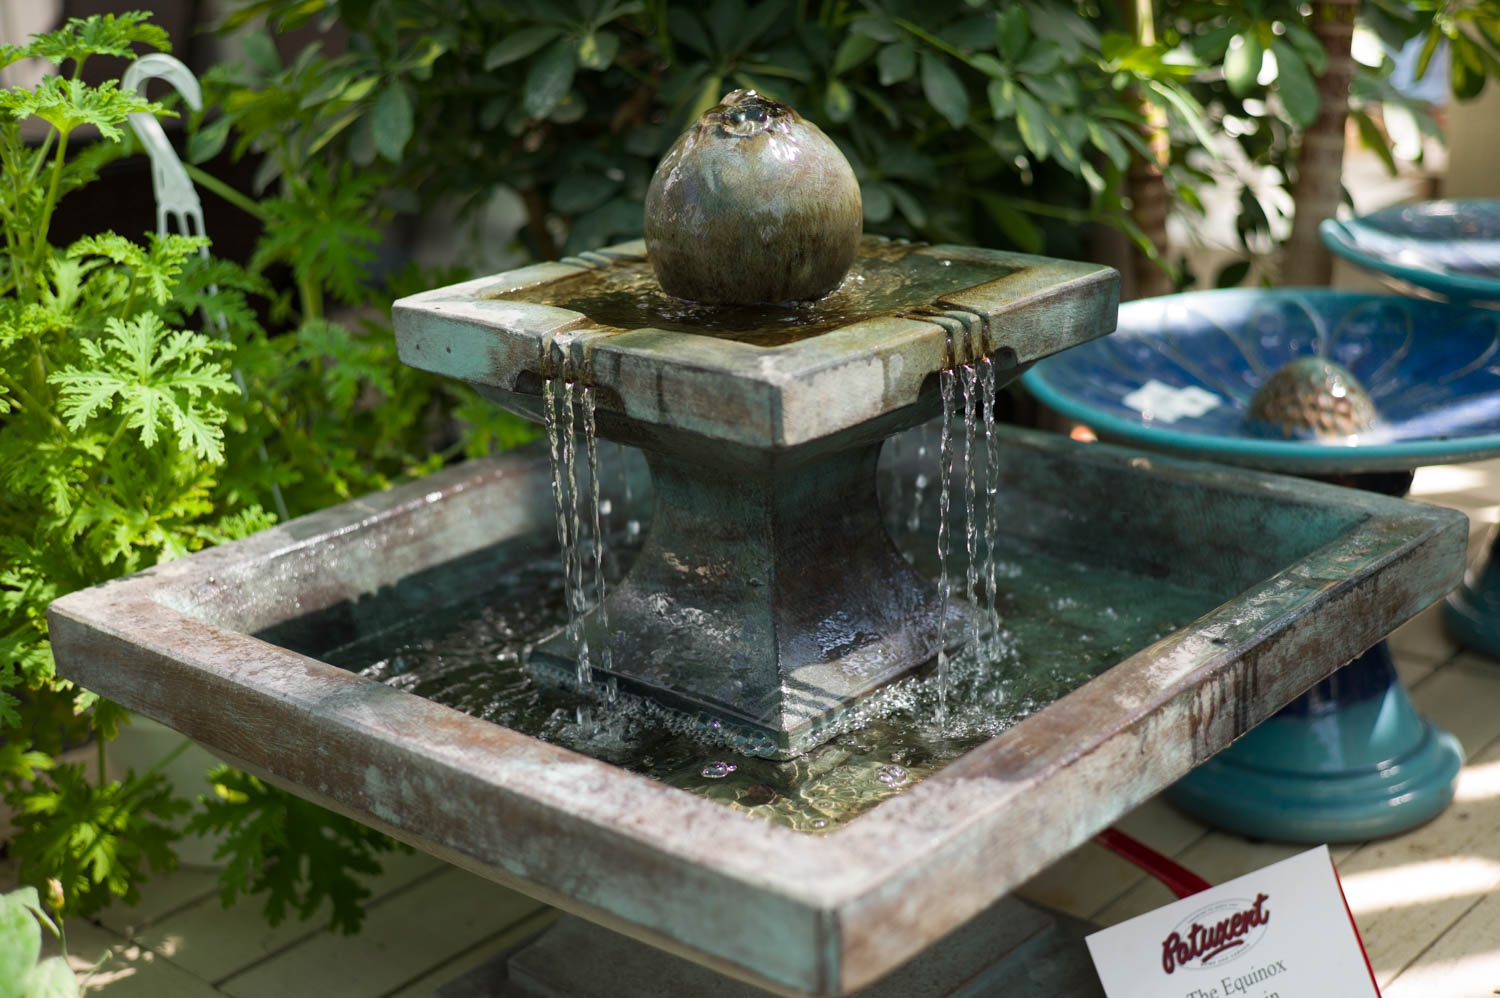 Outdoor Statuary and Fountains - Outdoor Fountains - Landscape Fountains - Water Features - Patuxent Nursery, Bowie, MD